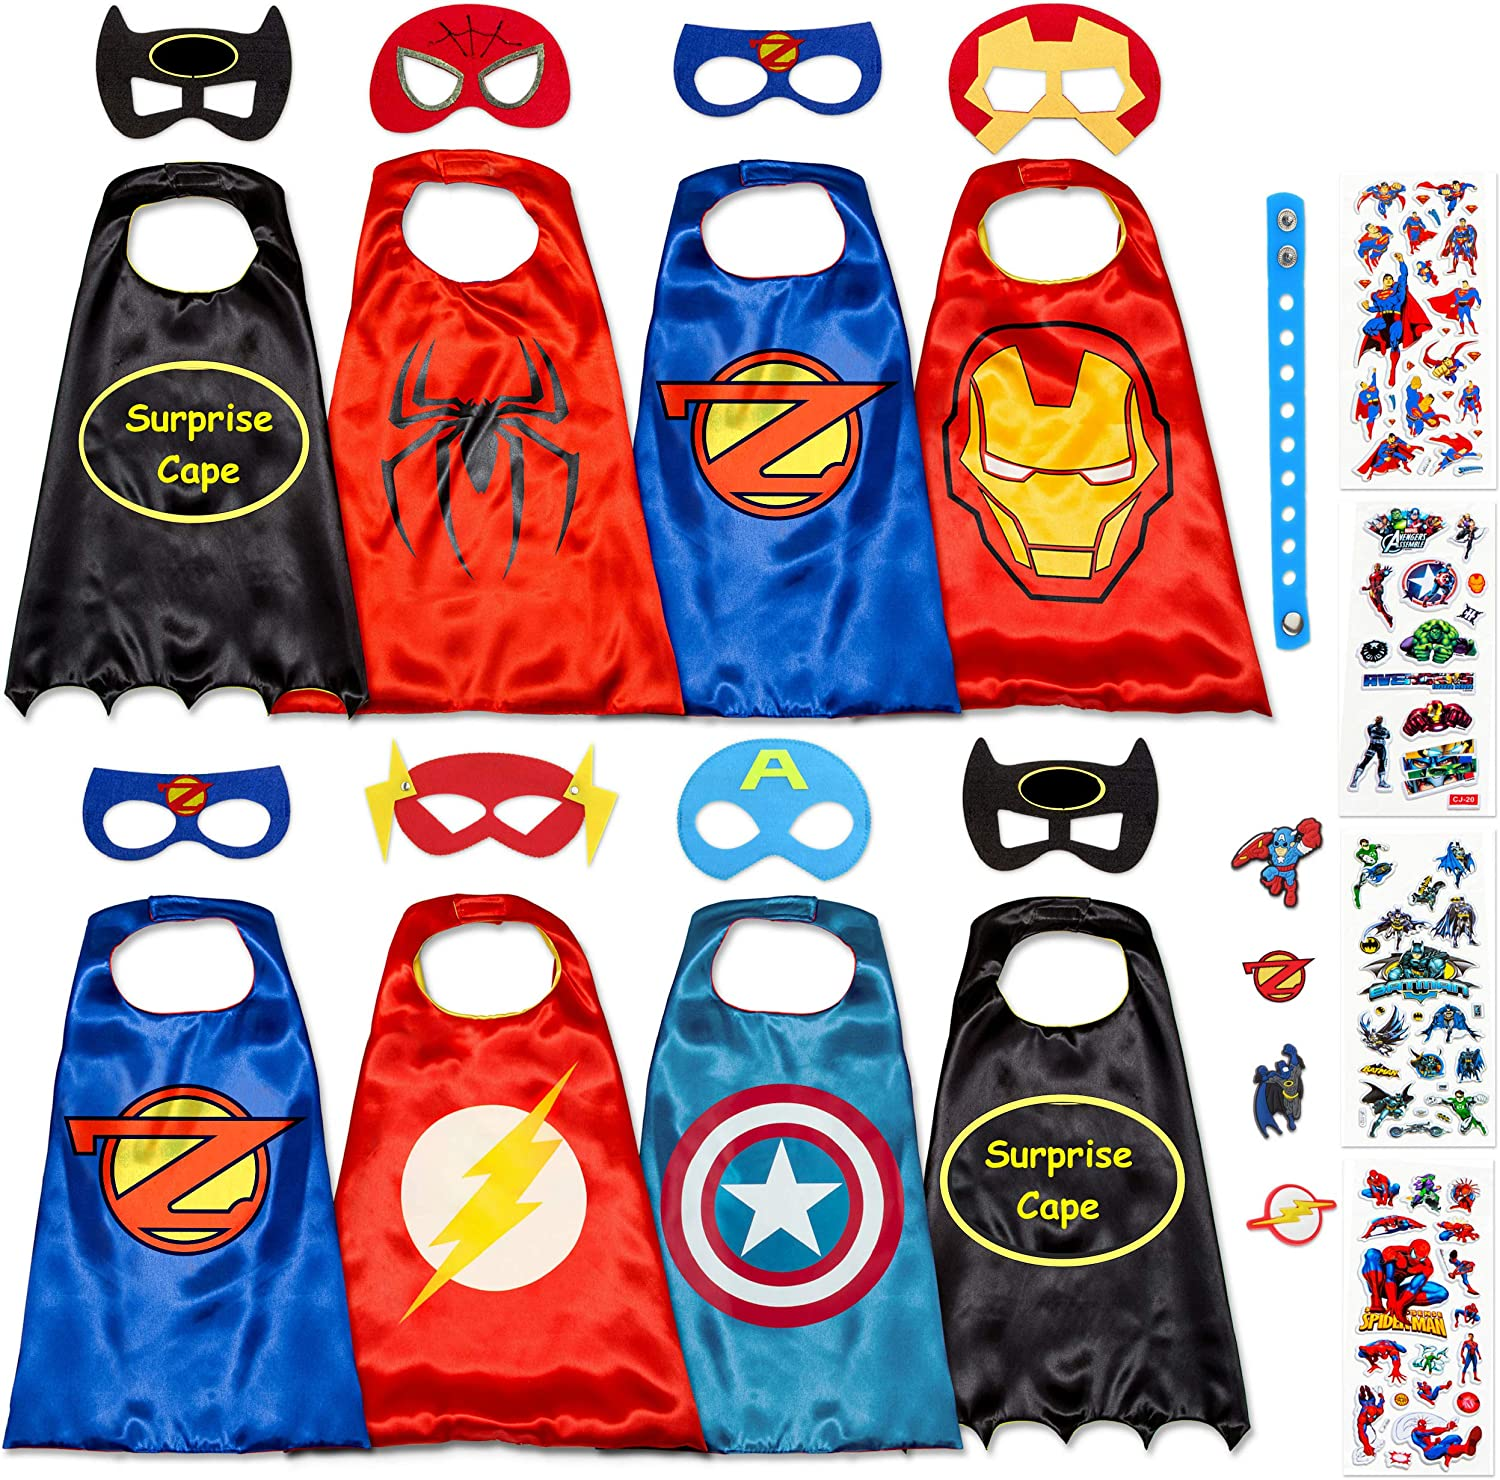 Stickers Take Party Pack Gifts for Kids Justice League 4 Different Superhero Cape and Mask Costumes Come with 295